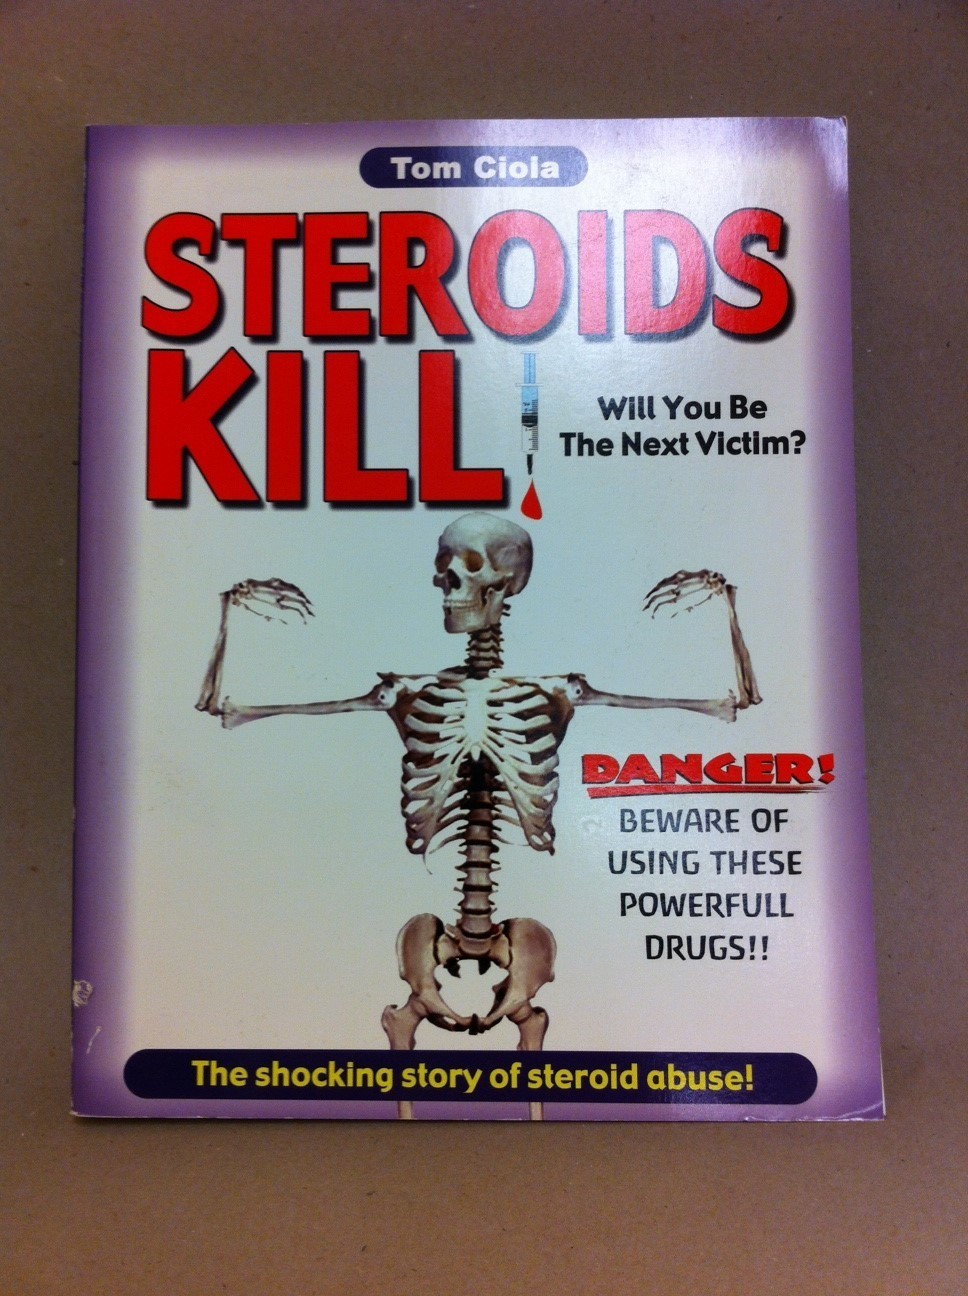 Steroids Kill! Will you be the next victim?